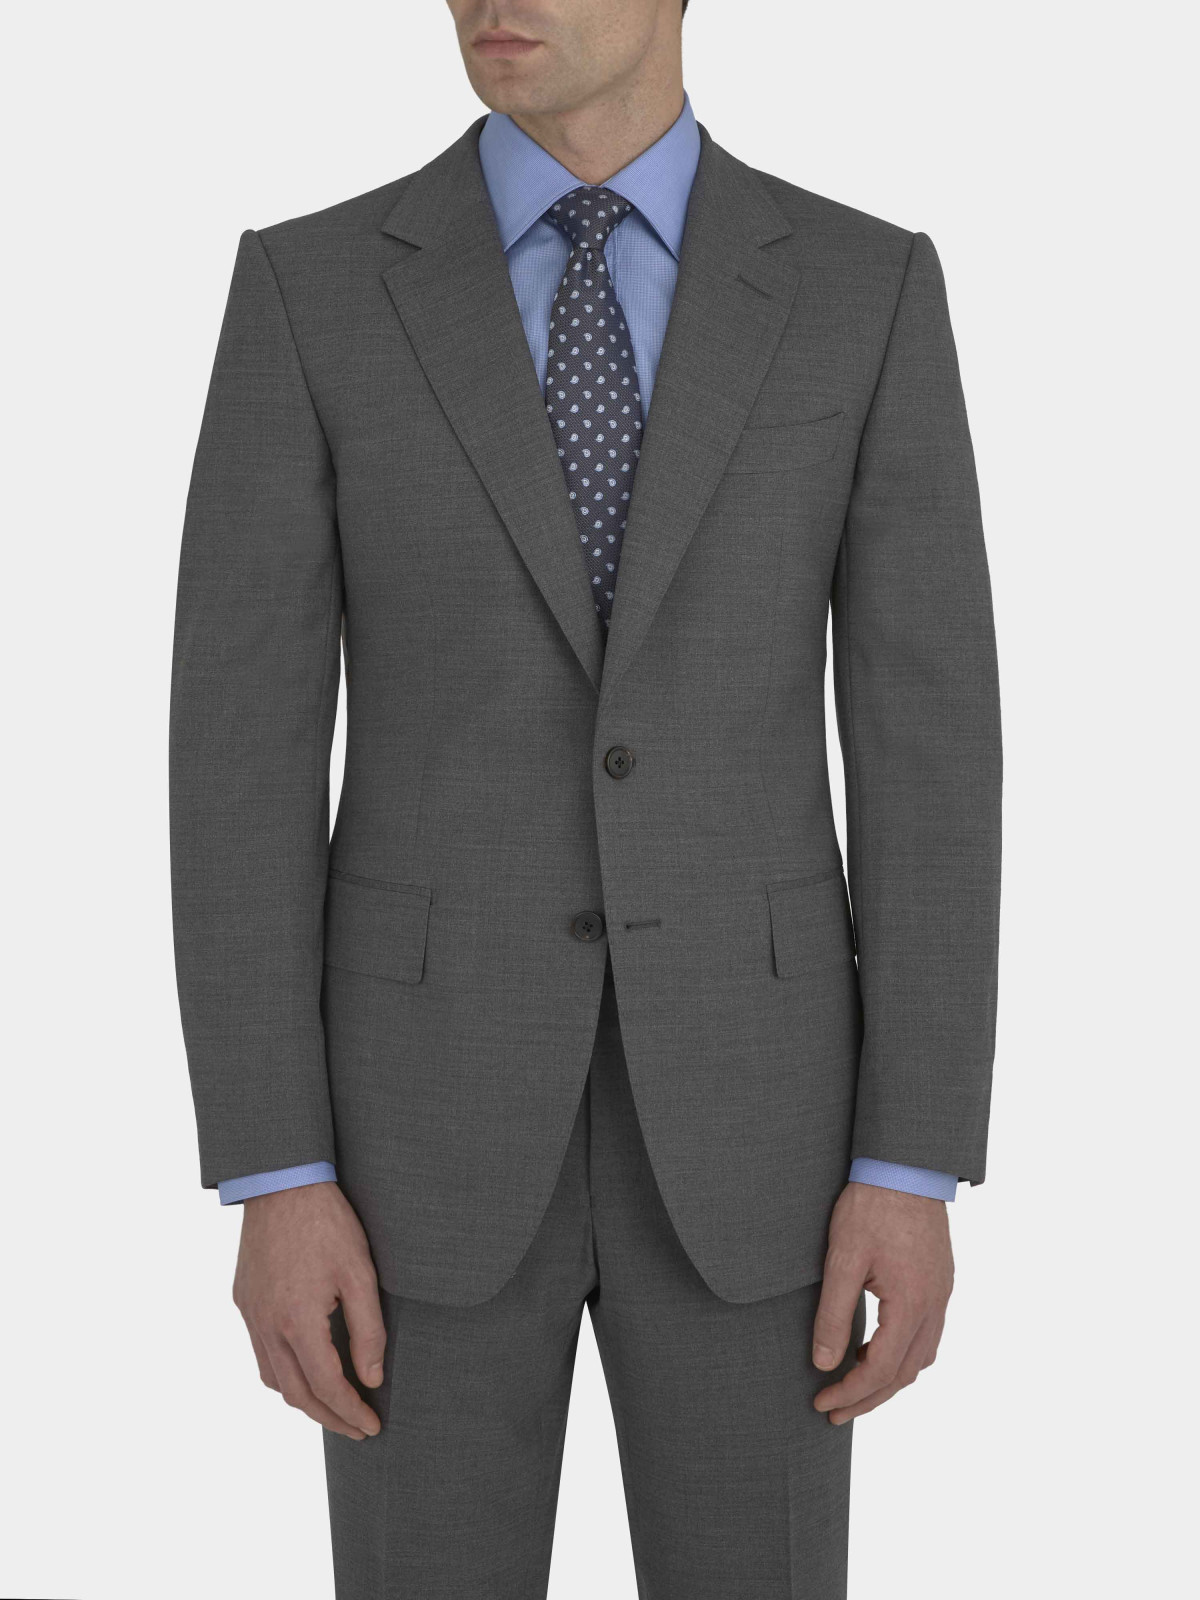 Gieves & Hawkes grey three piece suit - £1,195